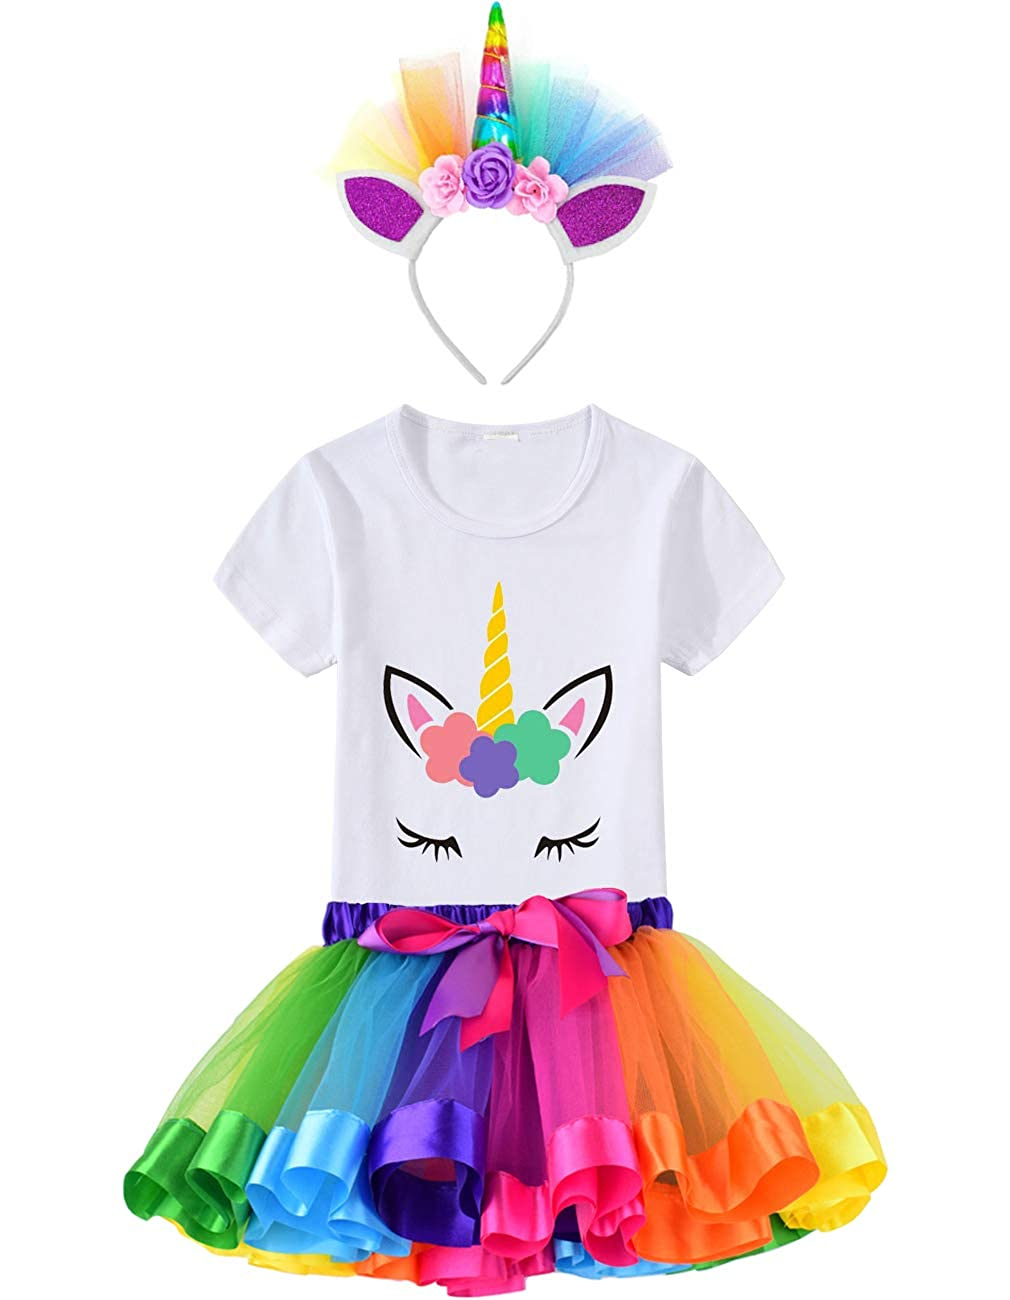 HBeatific Little Girls Layered Tulle Rainbow Tutu Skirt with Unicorn T-Shirt,Headband and Birthday Sash